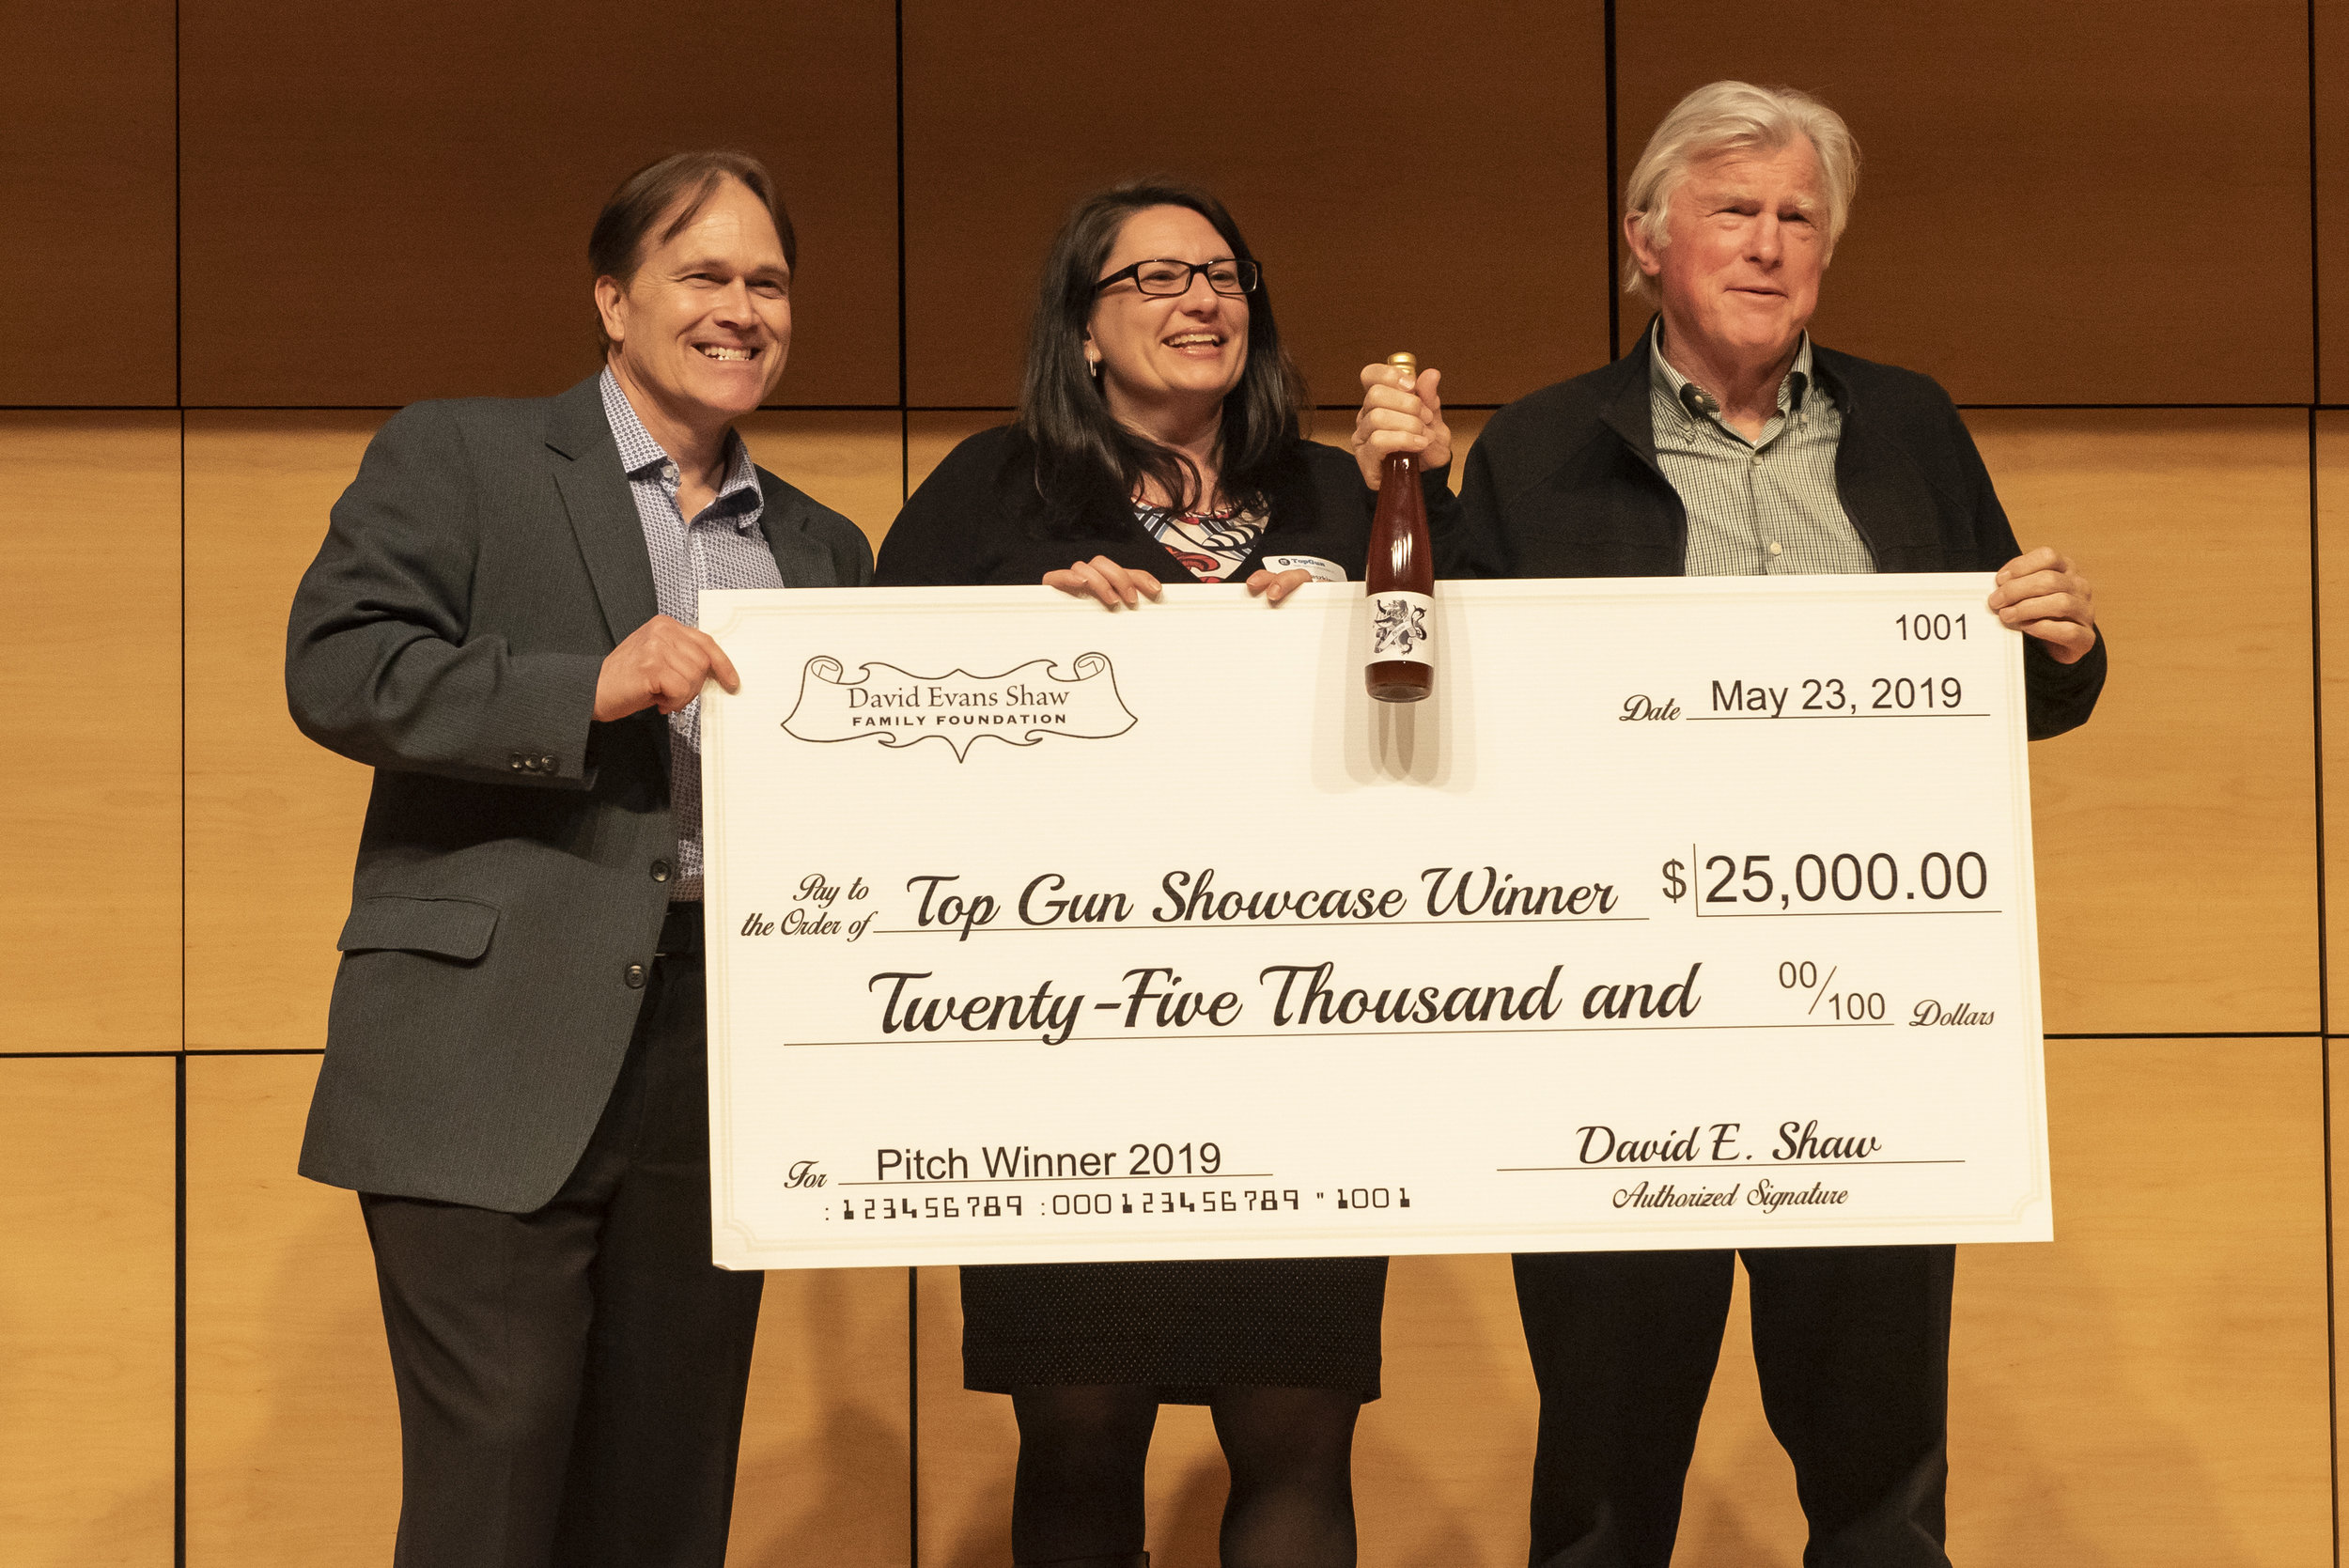 Neuright accepts the winning prize of $25,000  Tom Rainey, Magdalena Blaszkiewicz, David E. Shaw  Photo by Claudia Dricot